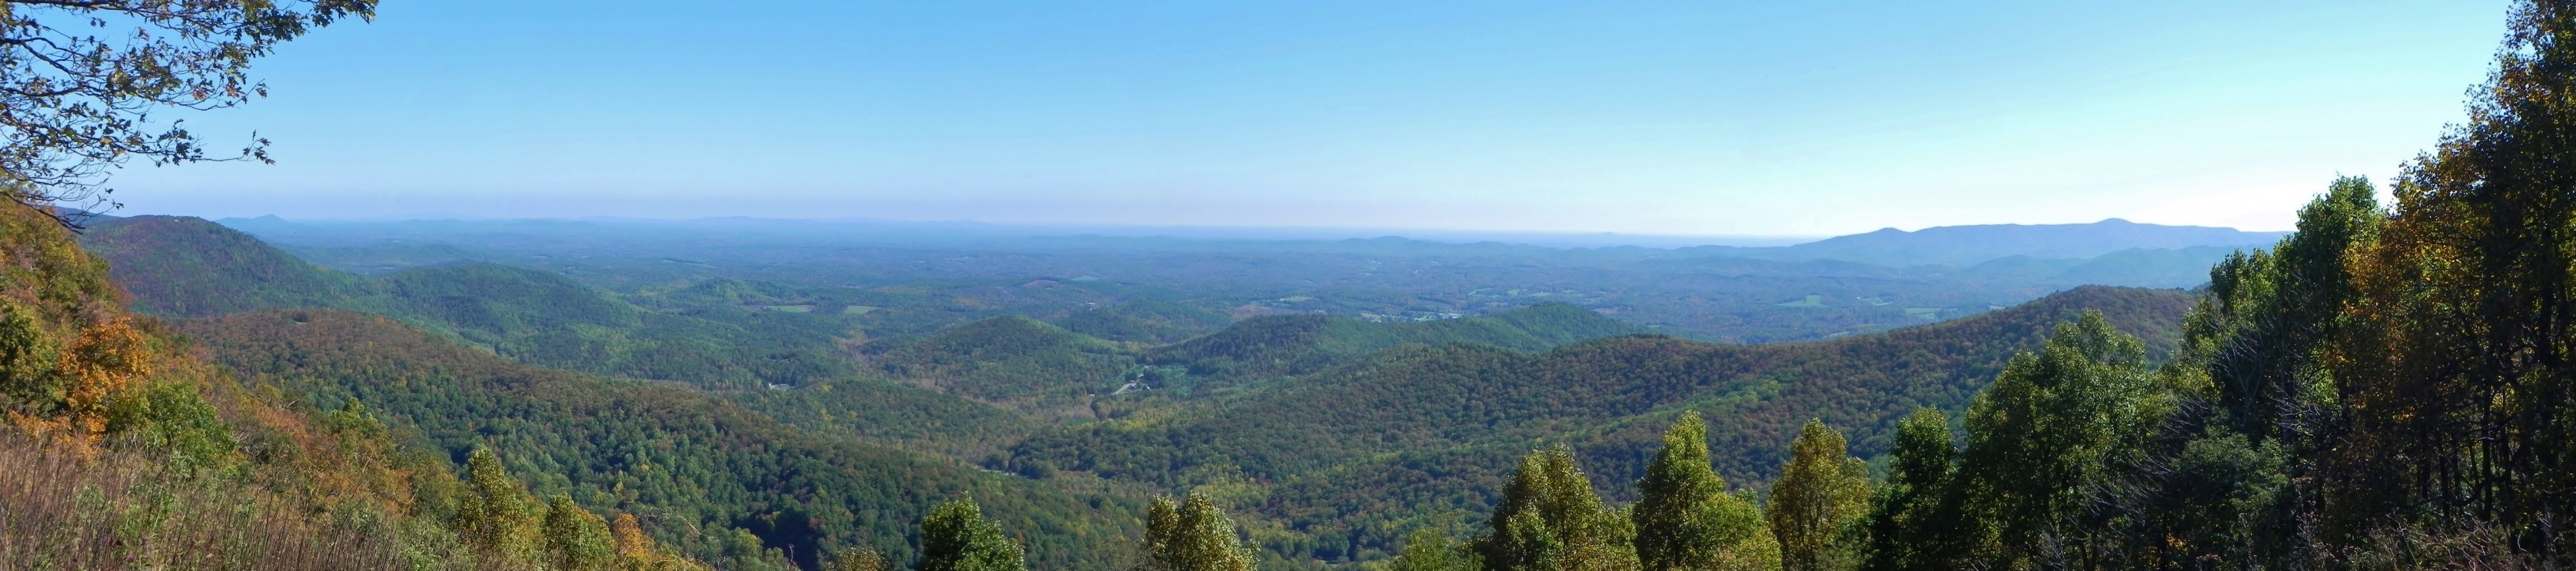 Panoramic View from Saddle Overlook, Rocky Knob, October 17, 2014. Image courtesy of Catherine Cranfill.